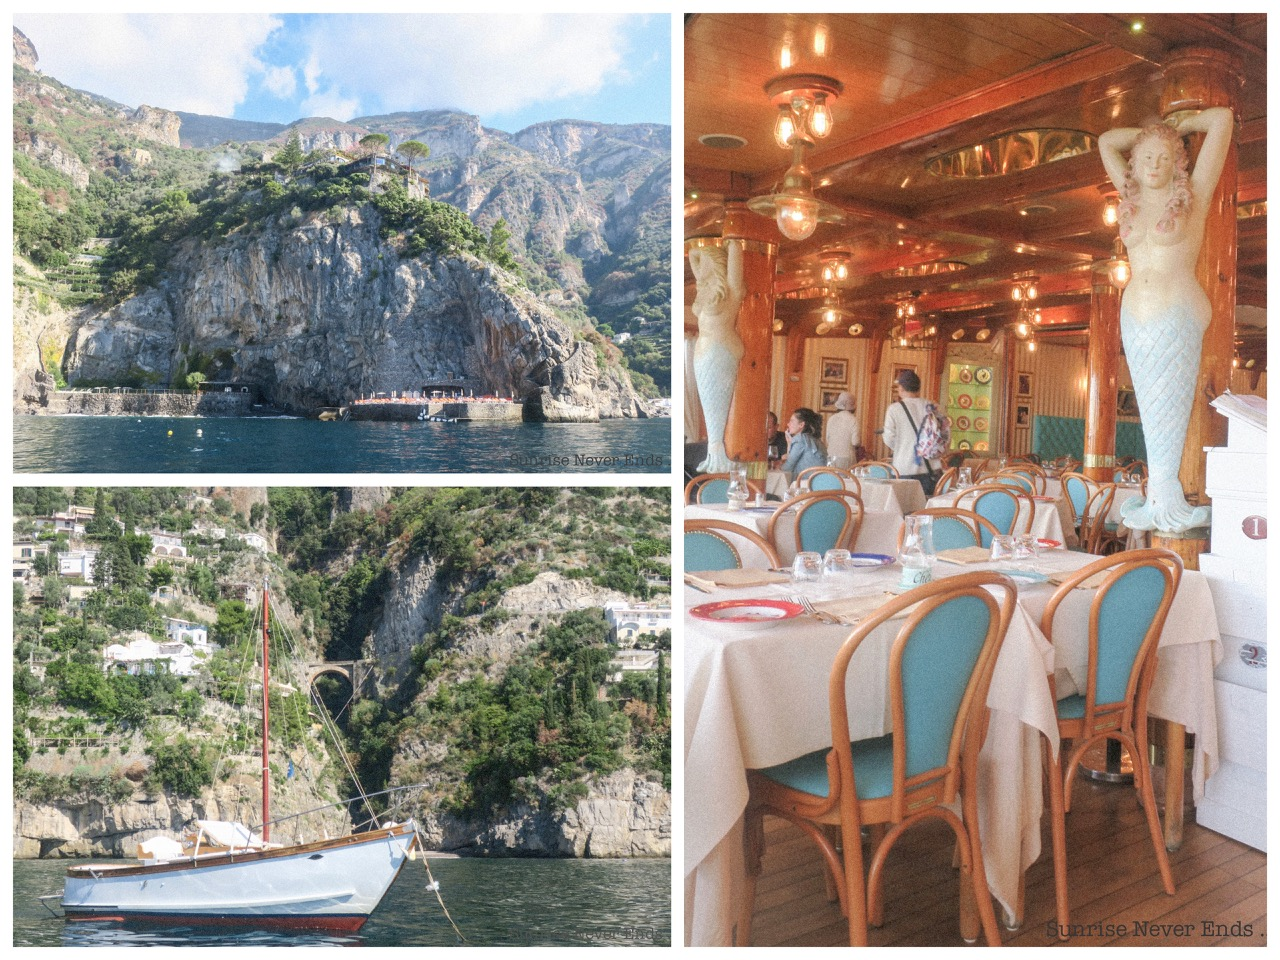 position,cote amalfitaine,italie,boattrip,anitalianboattrip,travel,travel guide,travel blogger,city guide,voyages,adresses,chez black, da adolfo,ferdinando,la zagara,la caravella,hotel,restaurant,plage privée